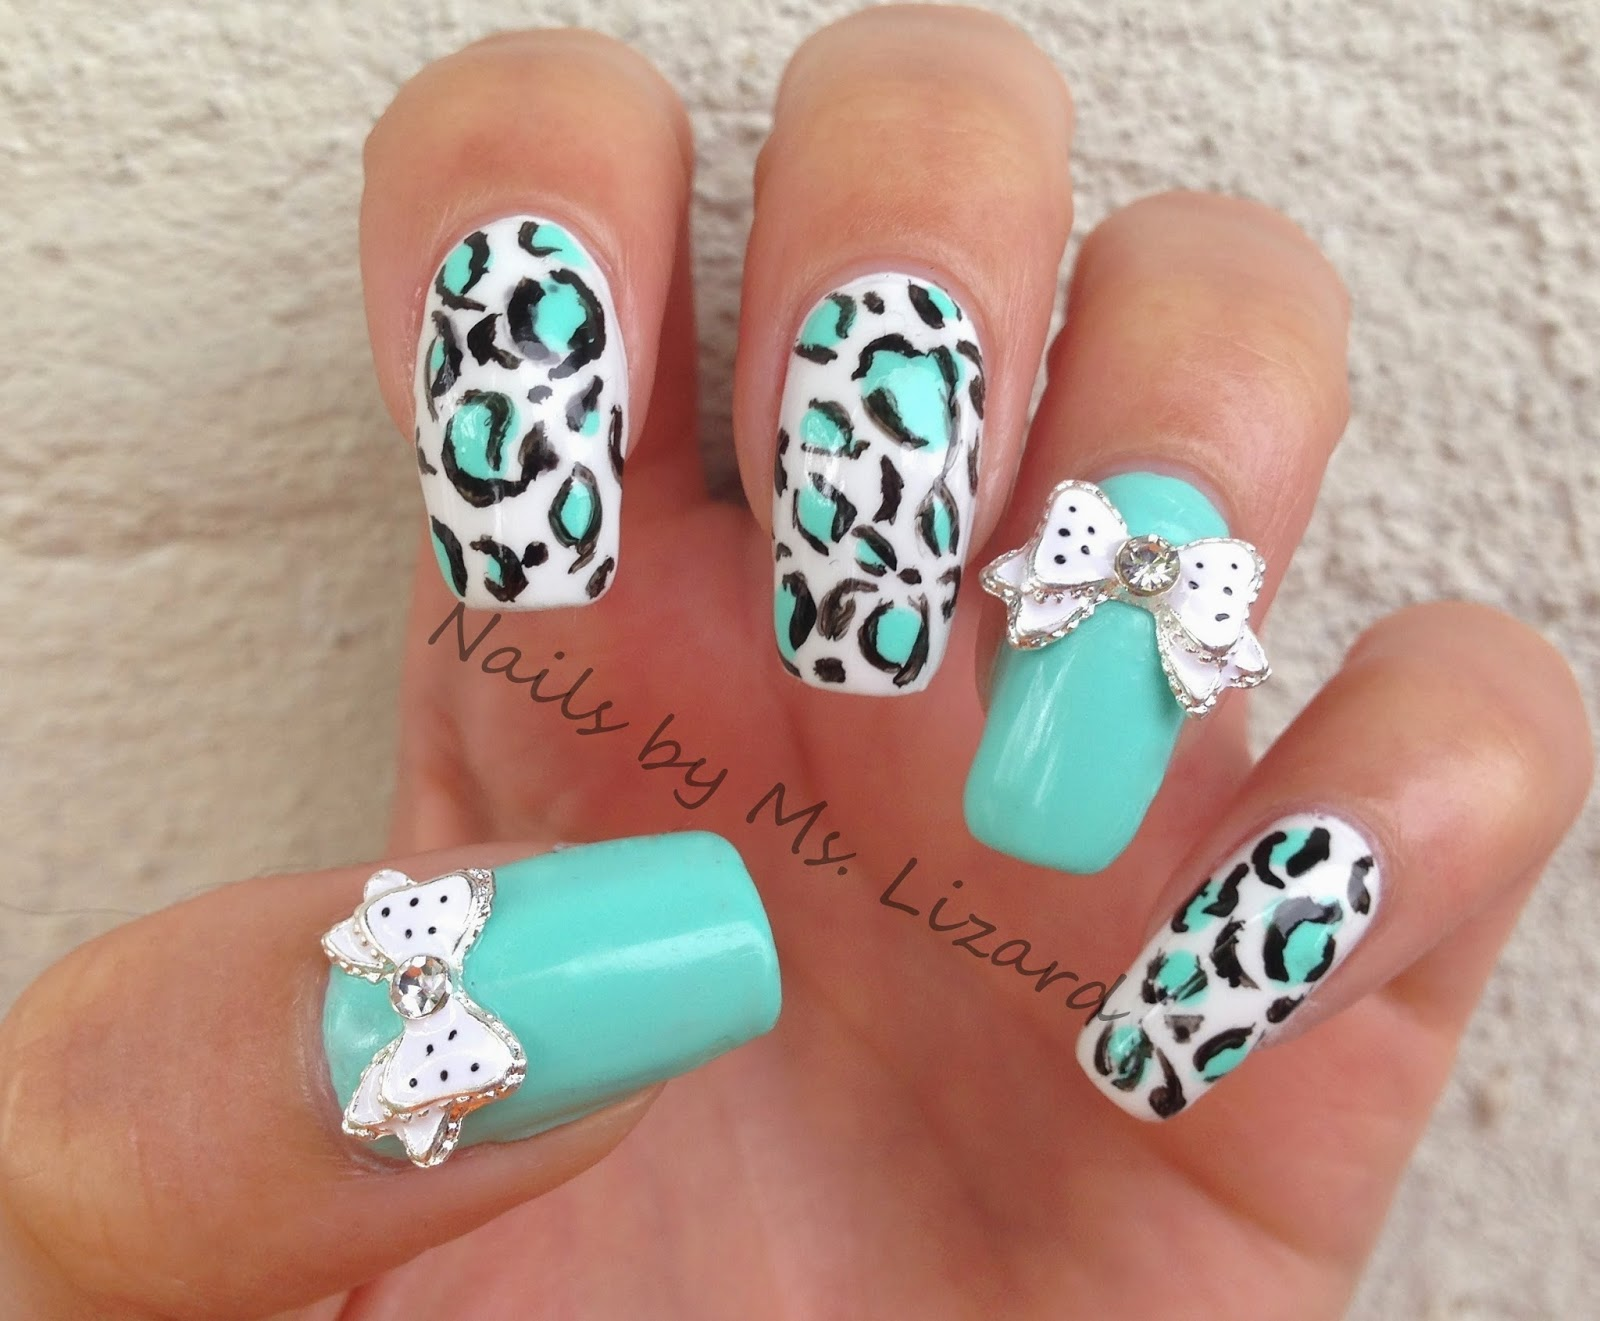 Nails by ms lizard born pretty store rhinestone bow polka dot colors used prinsesfo Image collections